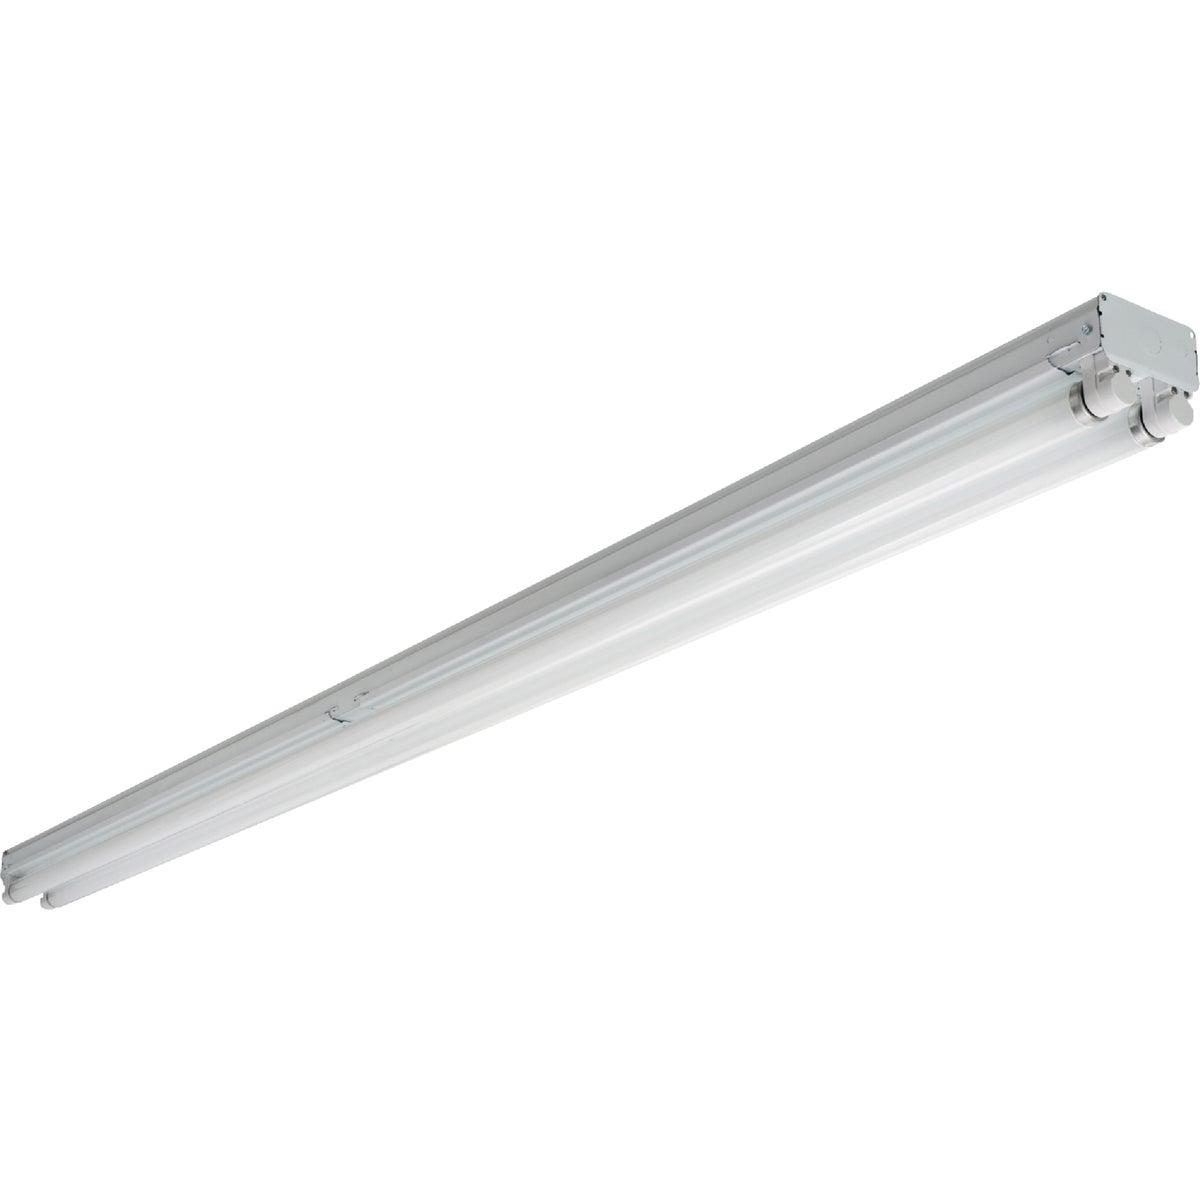 8' T8 2BULB STRIP LIGHT